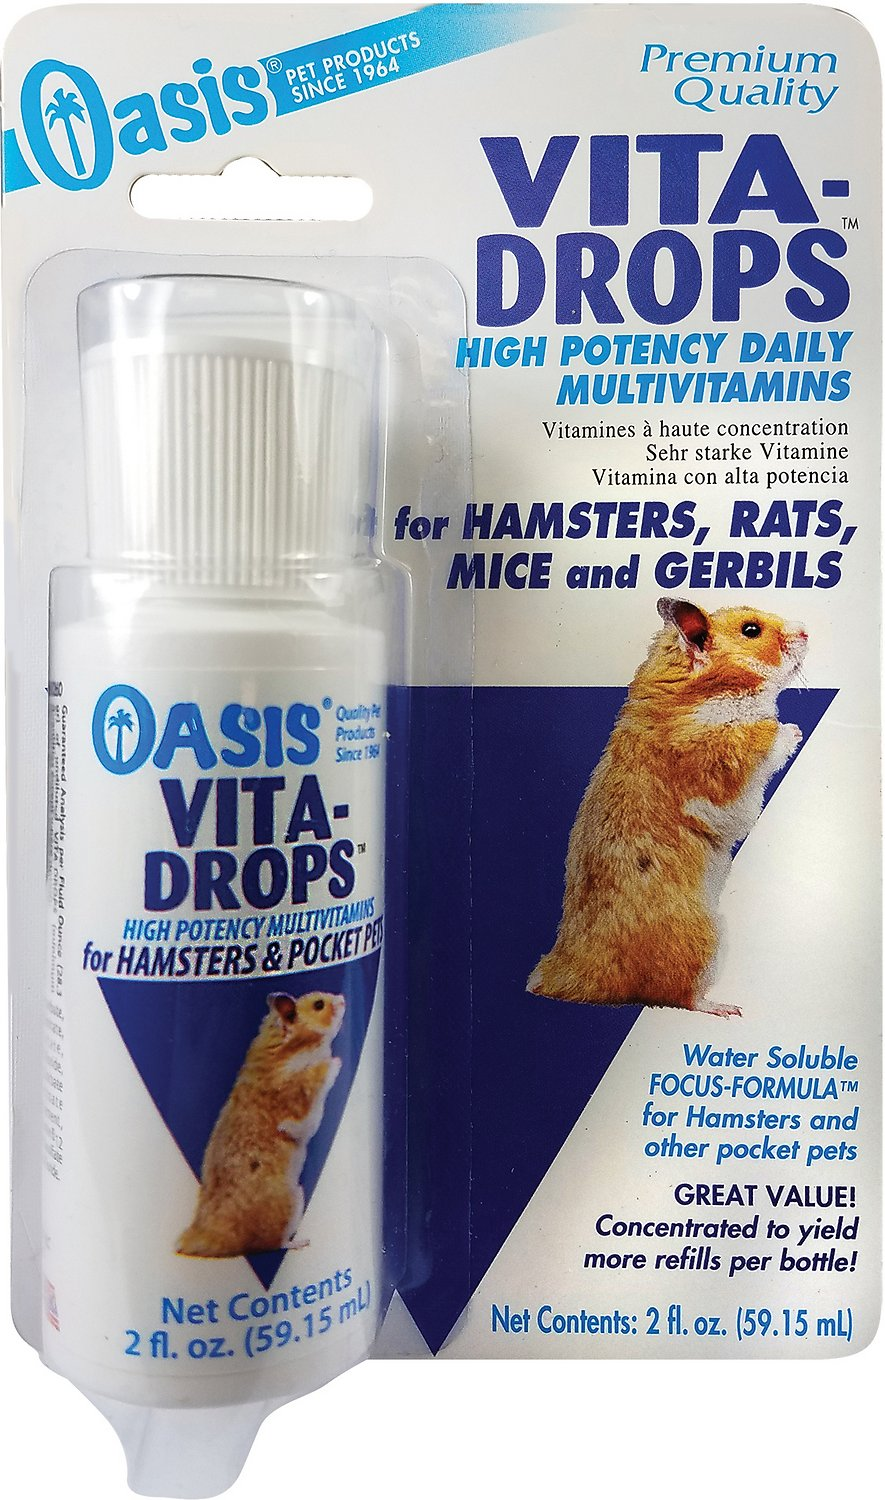 Oasis Vita-Drops Daily Multivitamin Hamster, Rat, Mouse & Gerbil Supplement, 2-oz bottle (Weights: 2ounces) Image